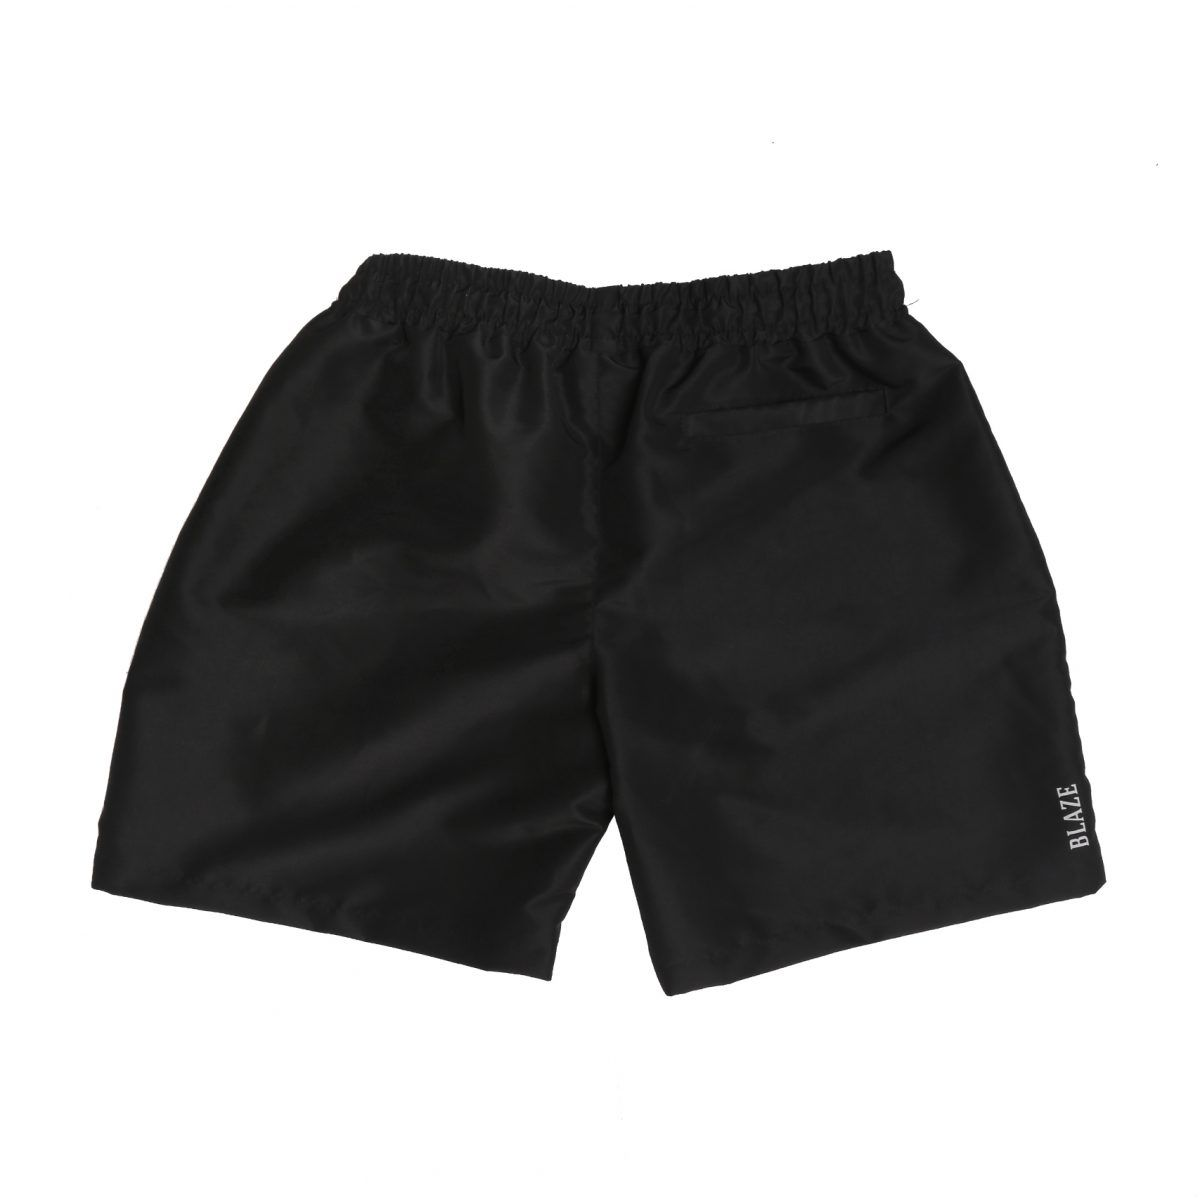 Shorts Pipe Black/ Green Blaze Supply